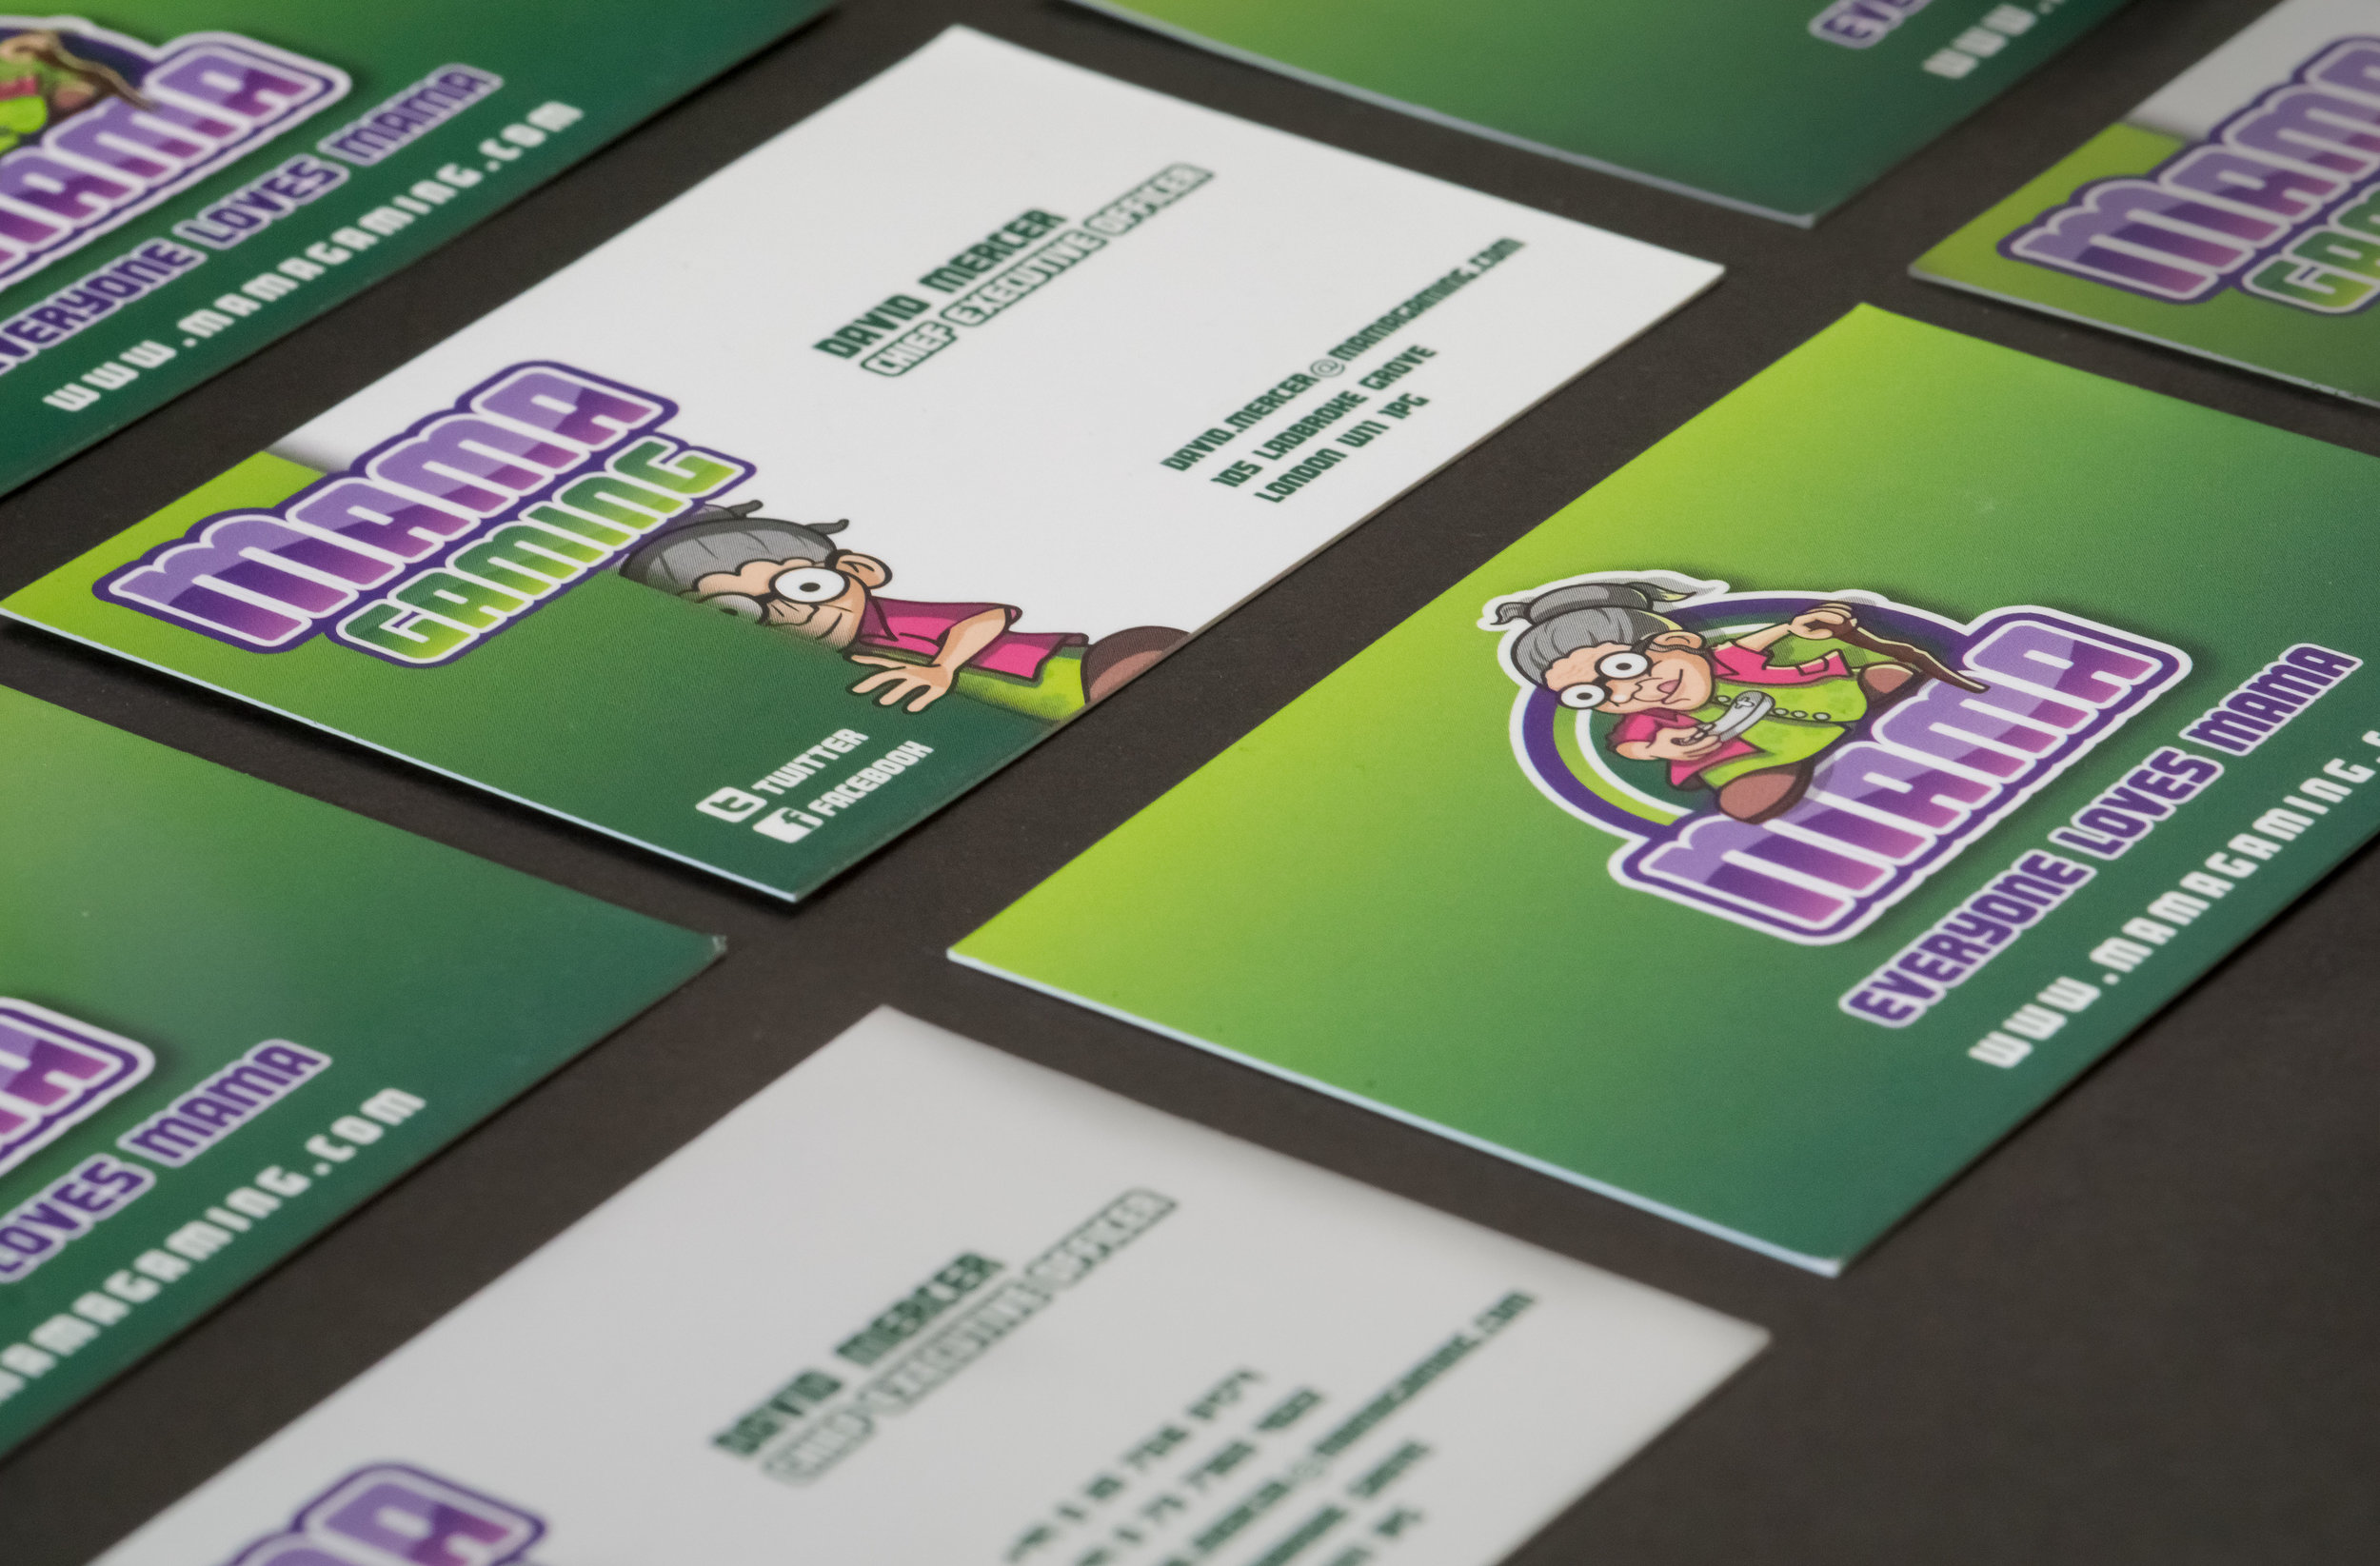 Mamagaming business cards designed and printed.